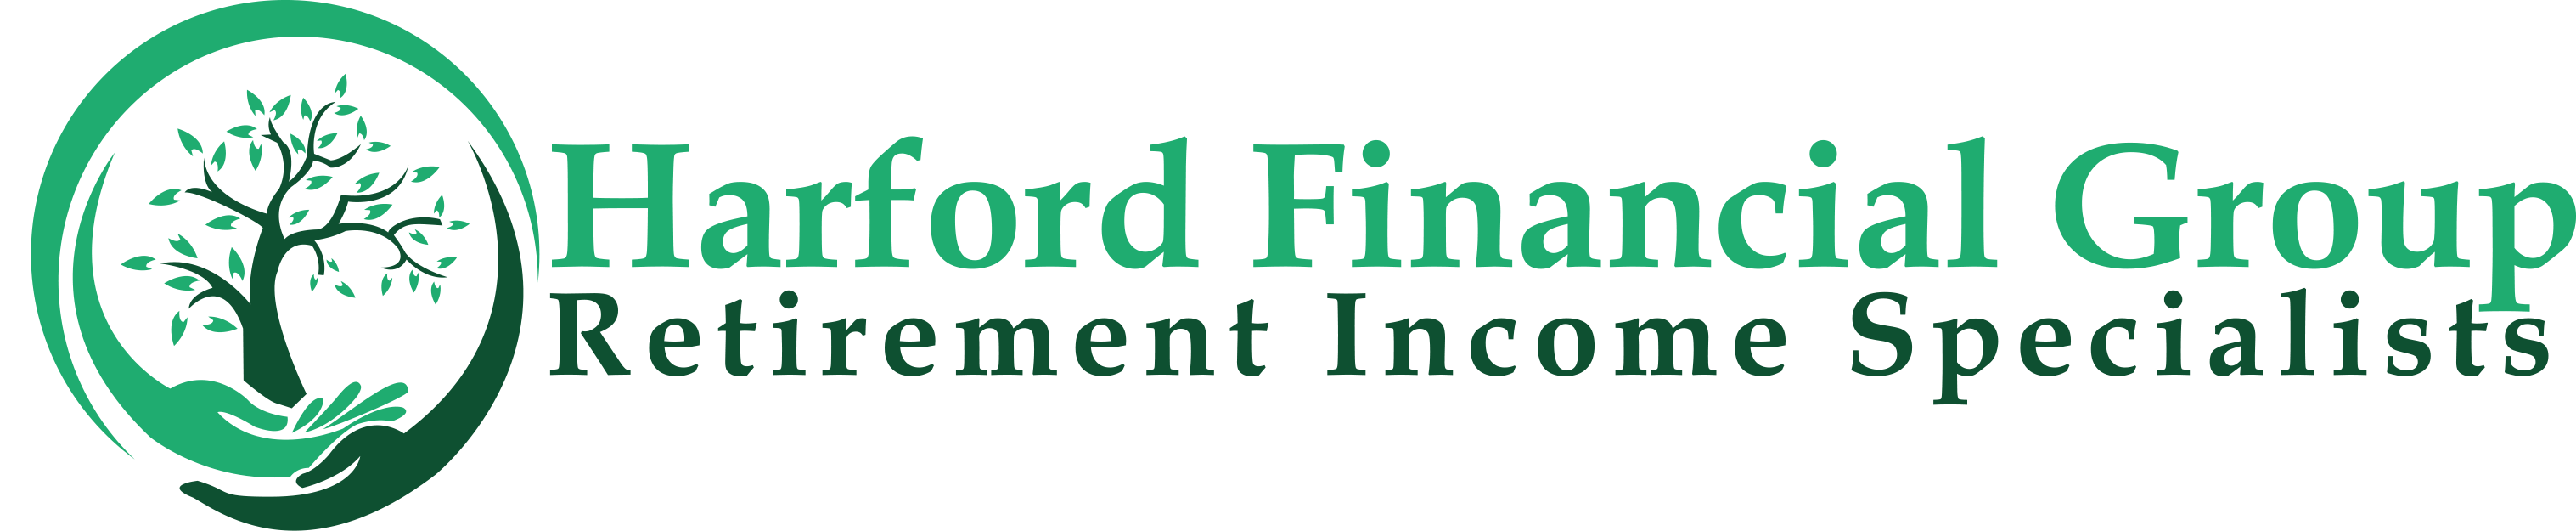 Harford Financial Group - Bel Air, MD